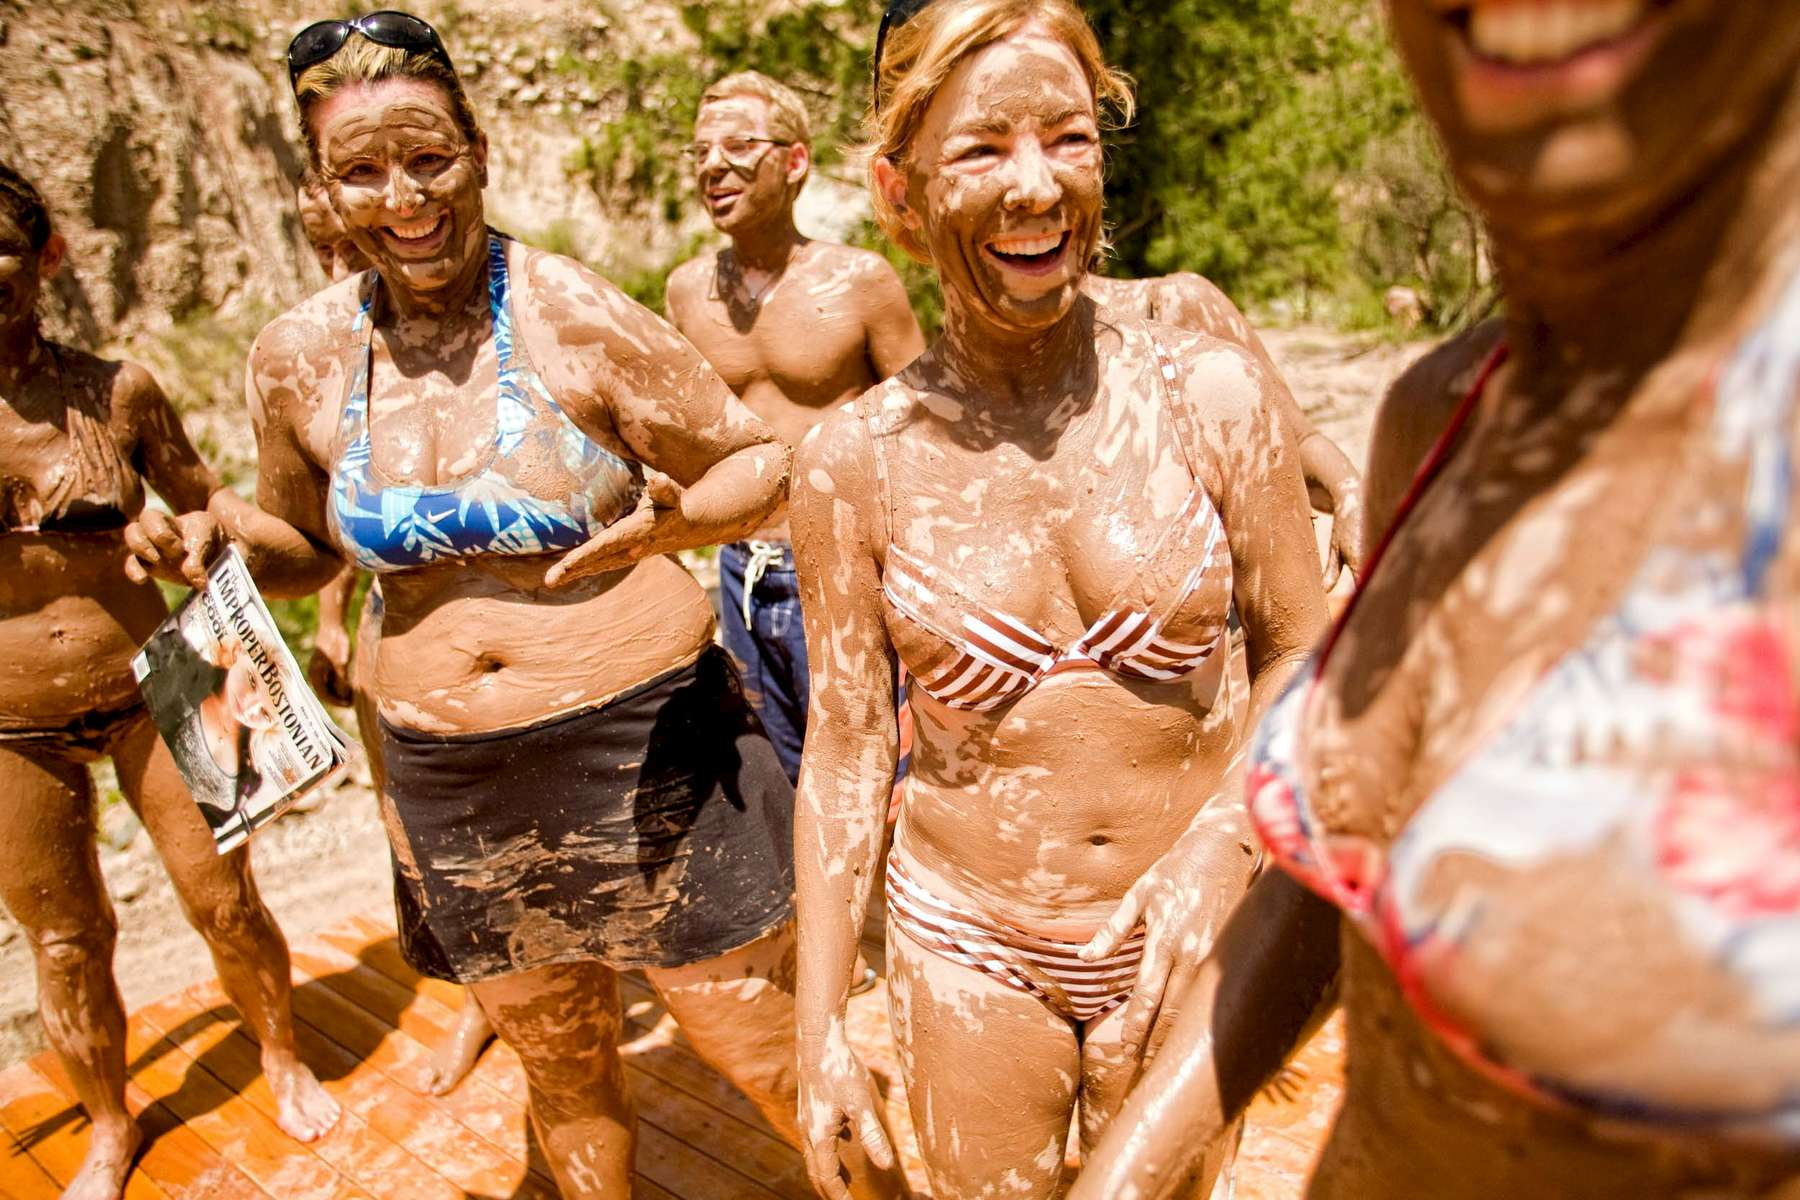 mudbath-fun-travel-1.jpg